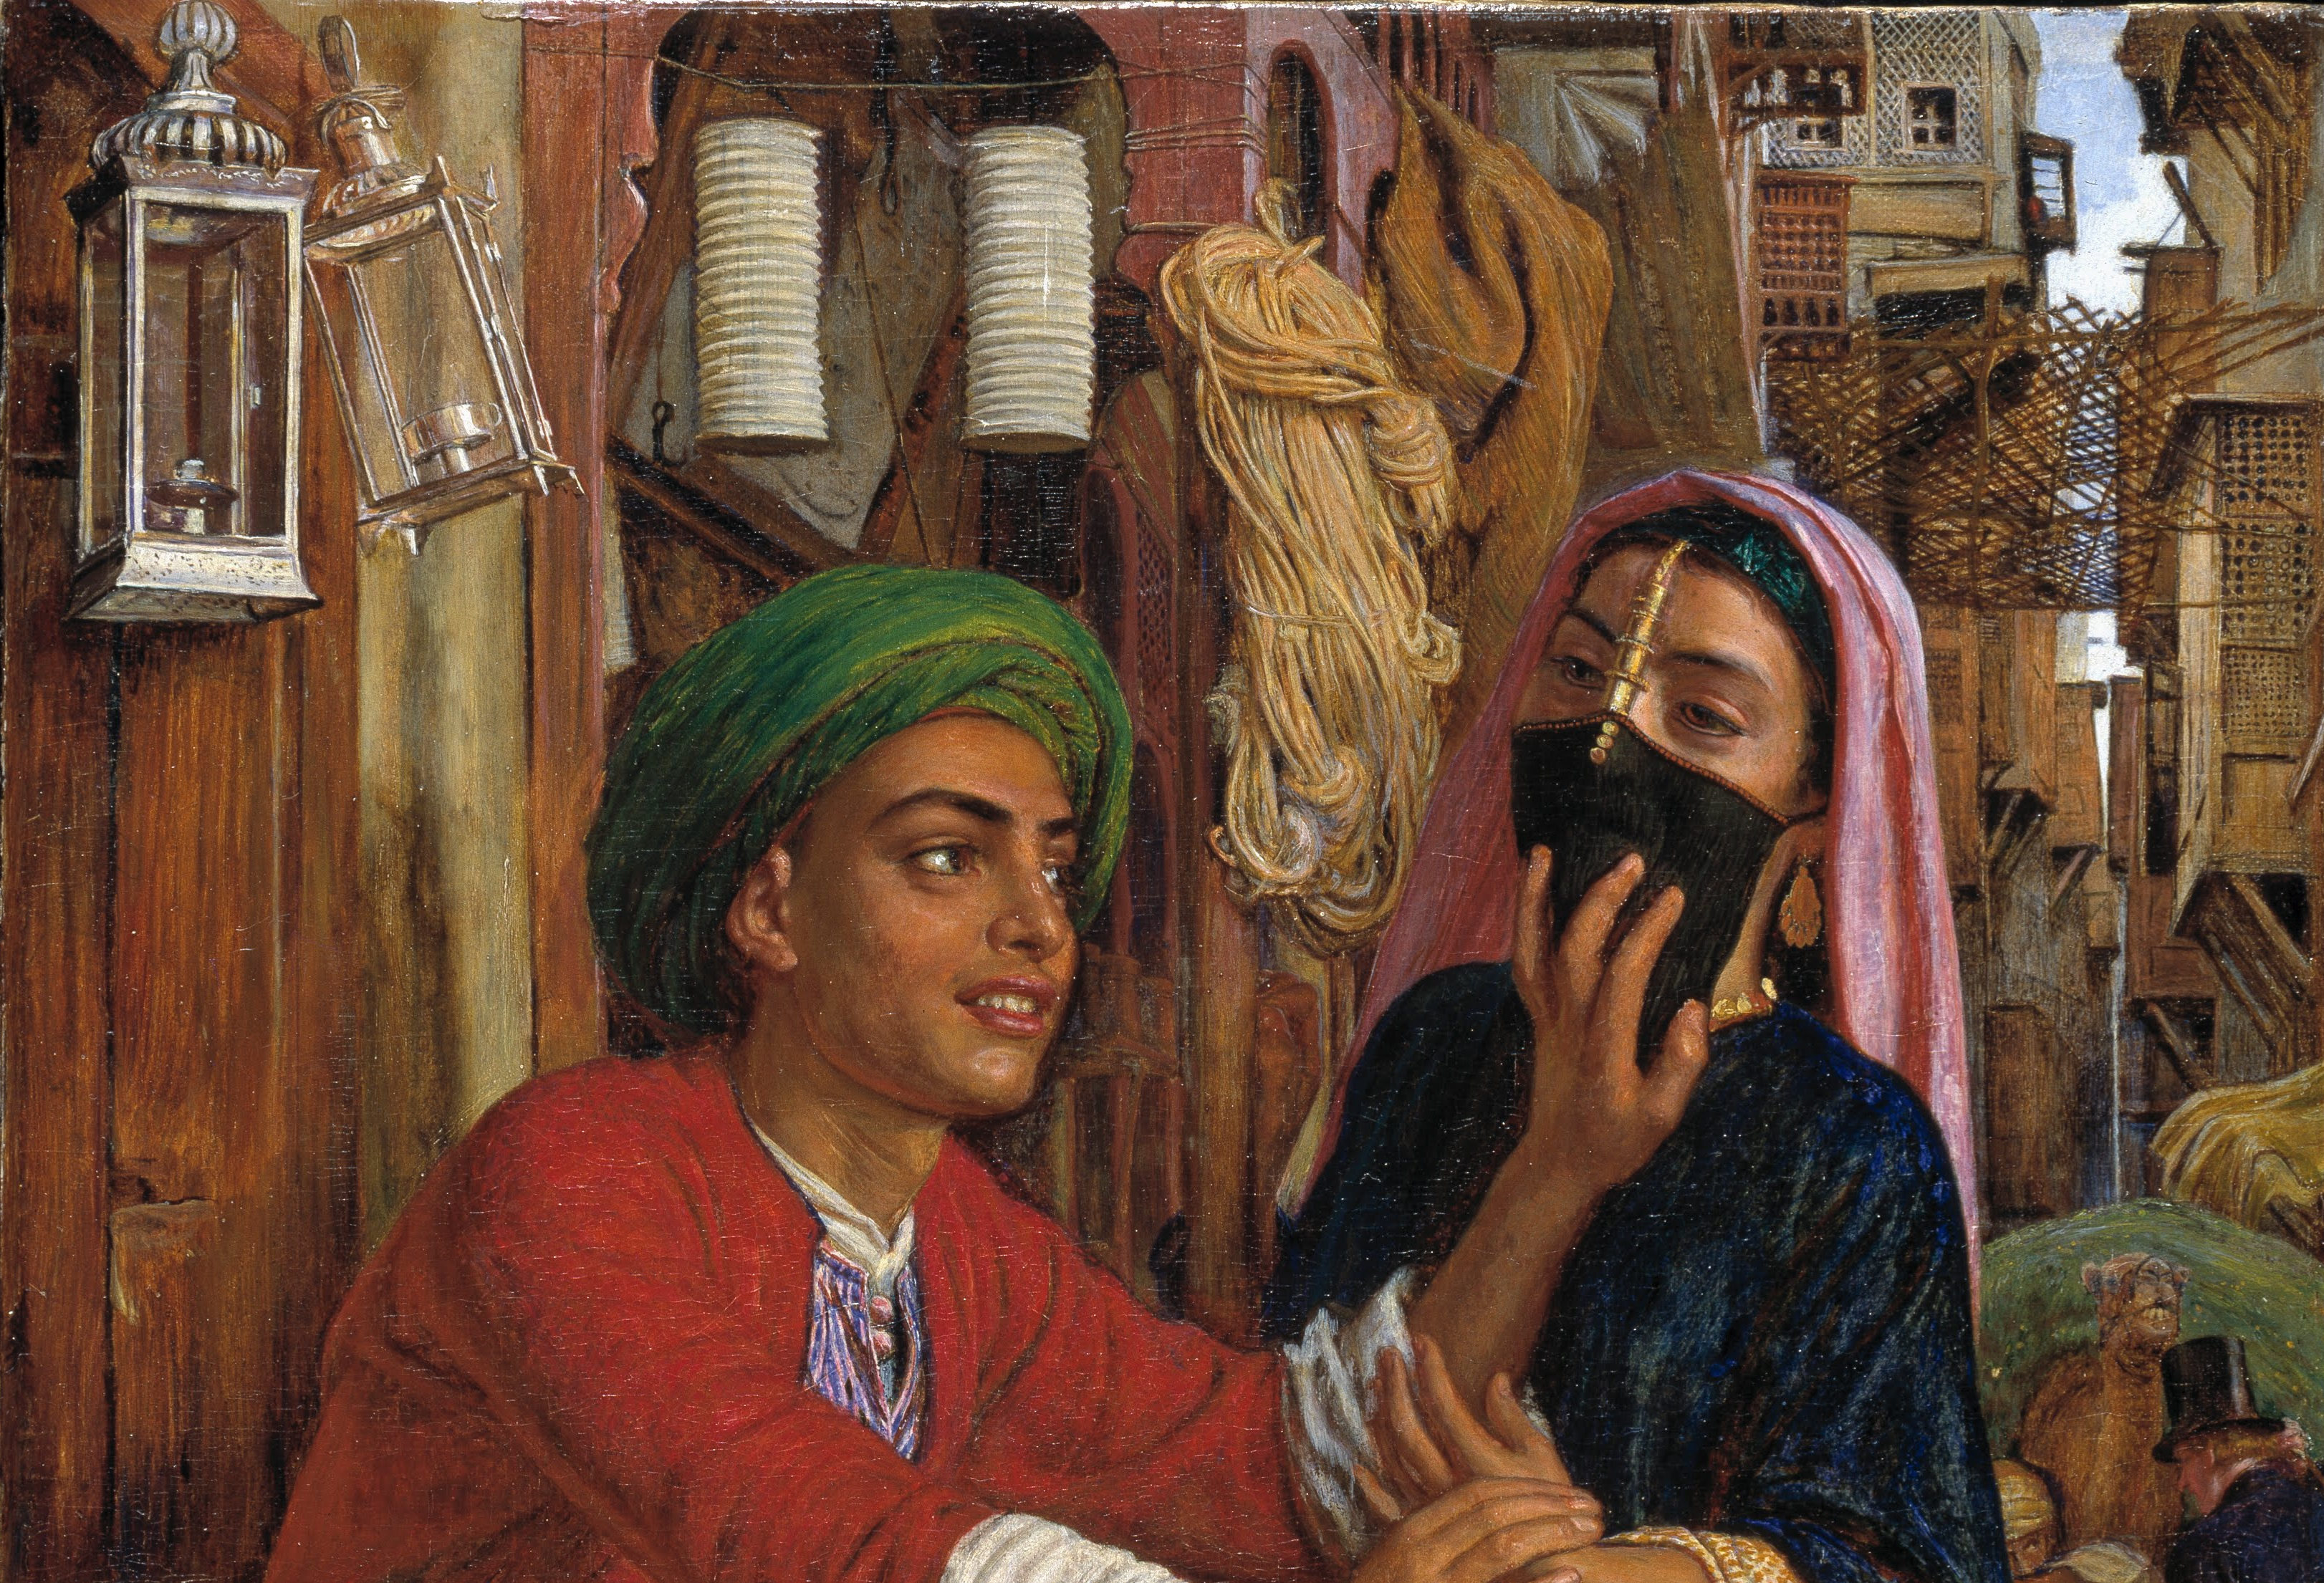 View of a painting showing a veiled woman standing next to a man with his hand on her mouth.